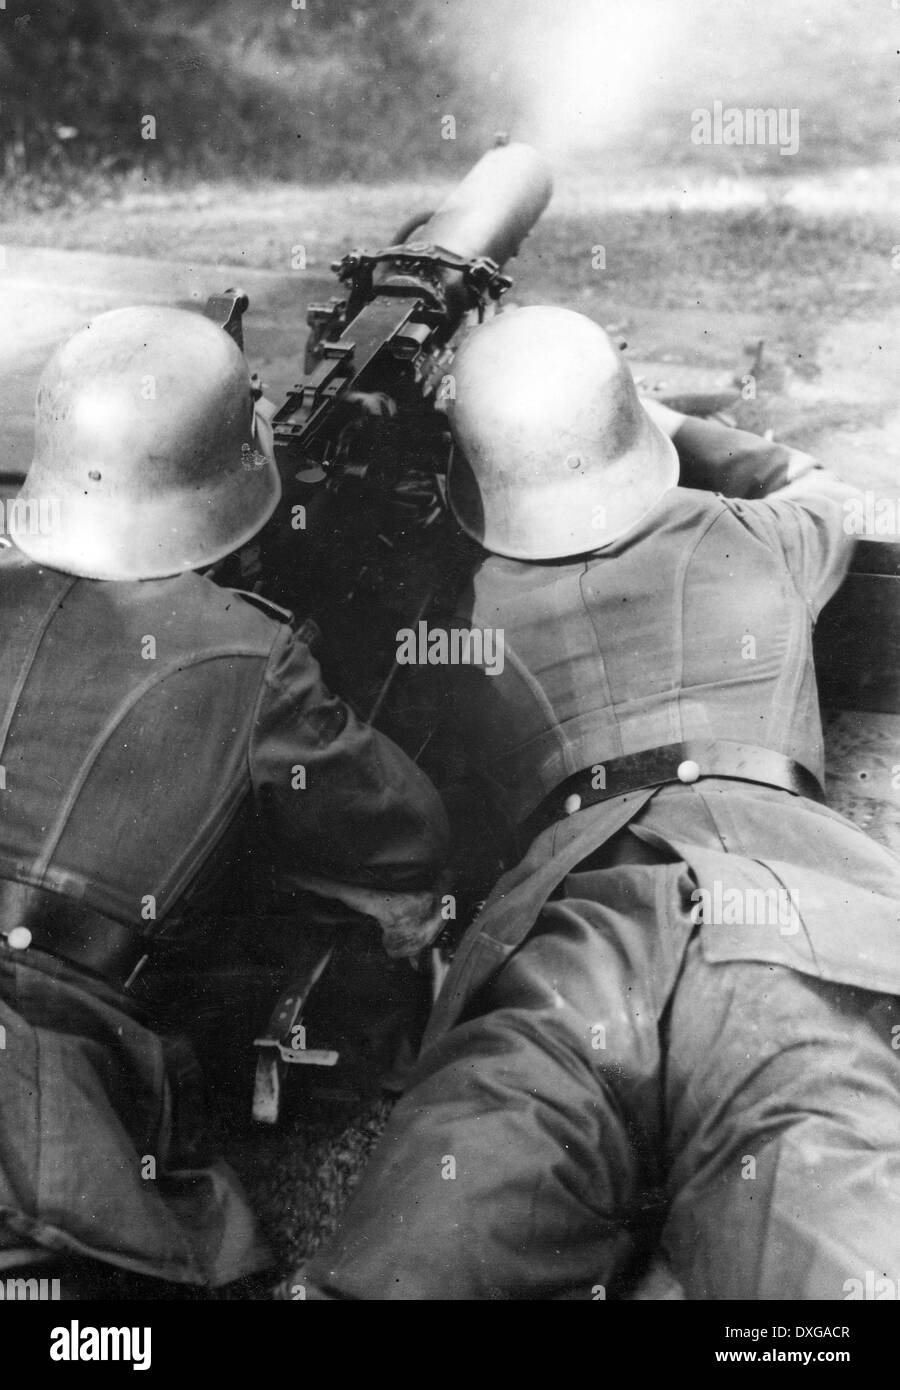 German soldiers WW2 - Stock Image